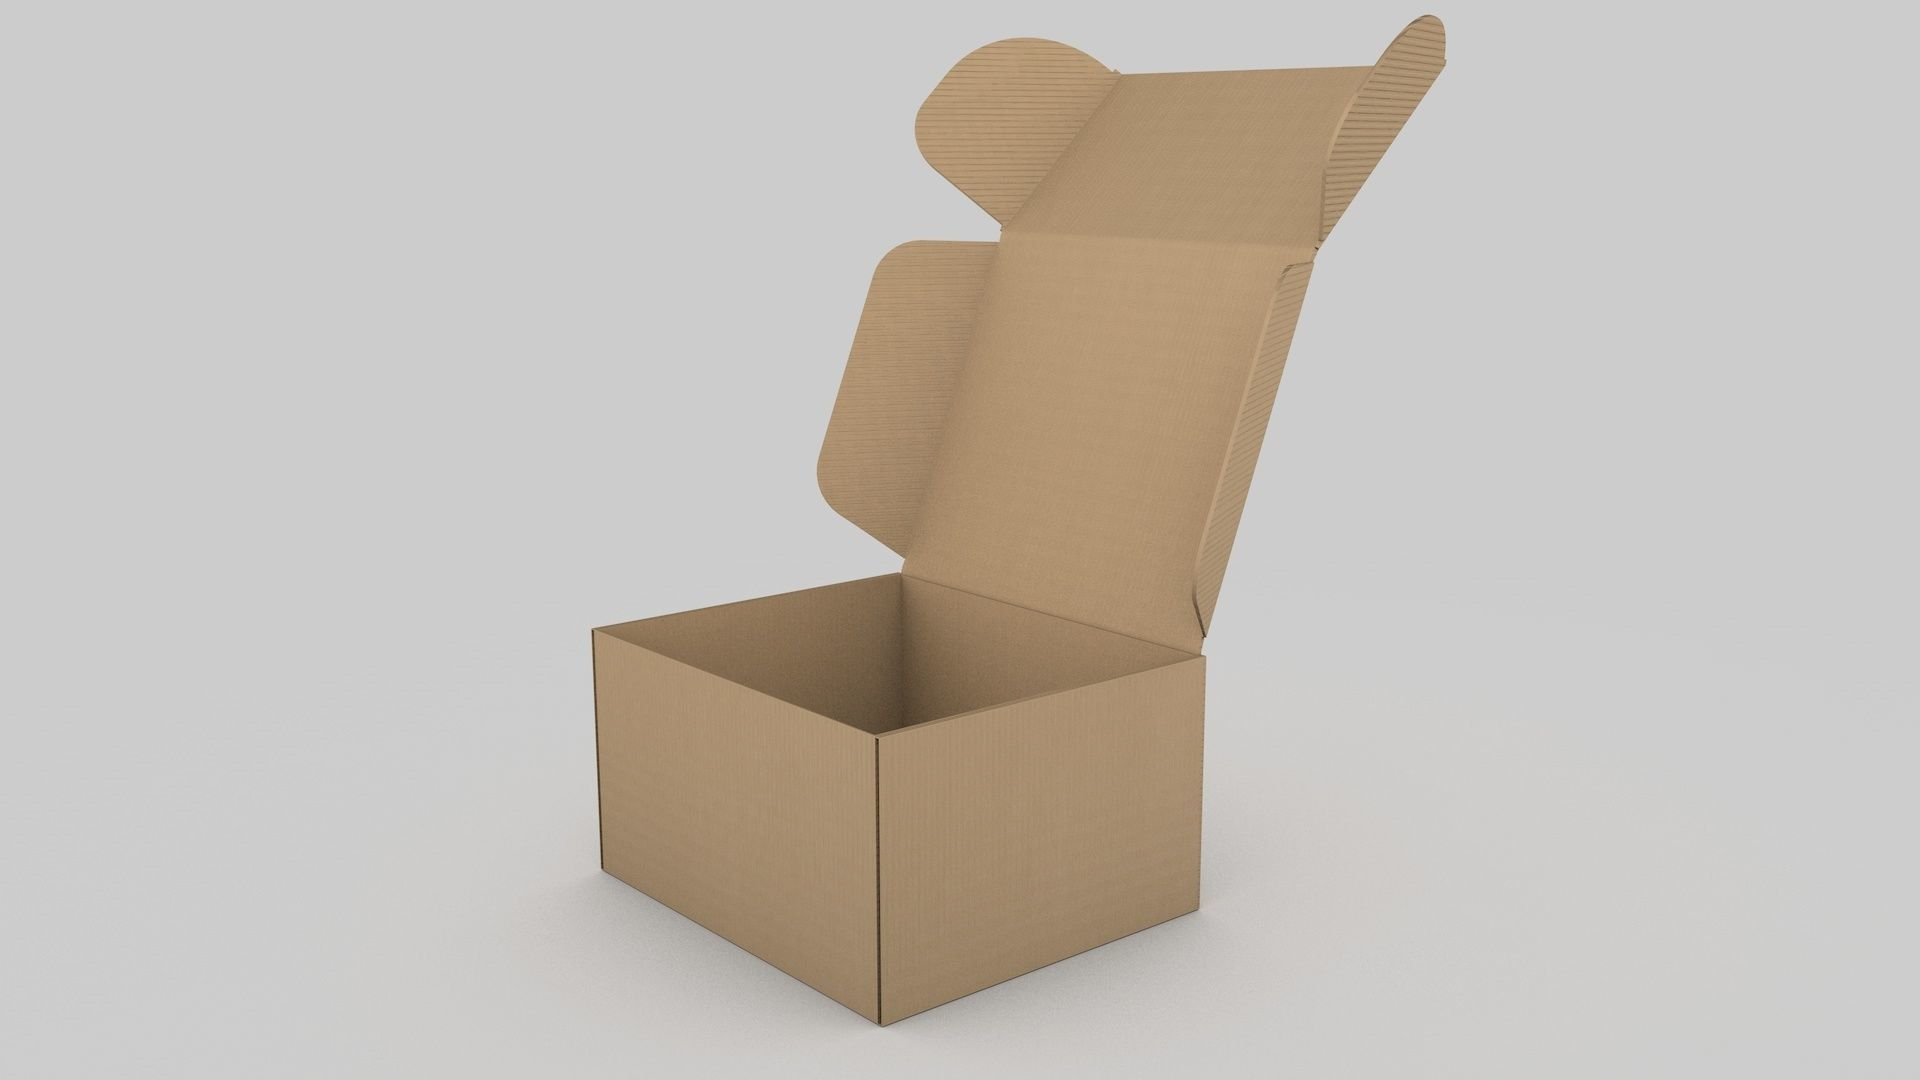 Adjustable and Rigged Box Package